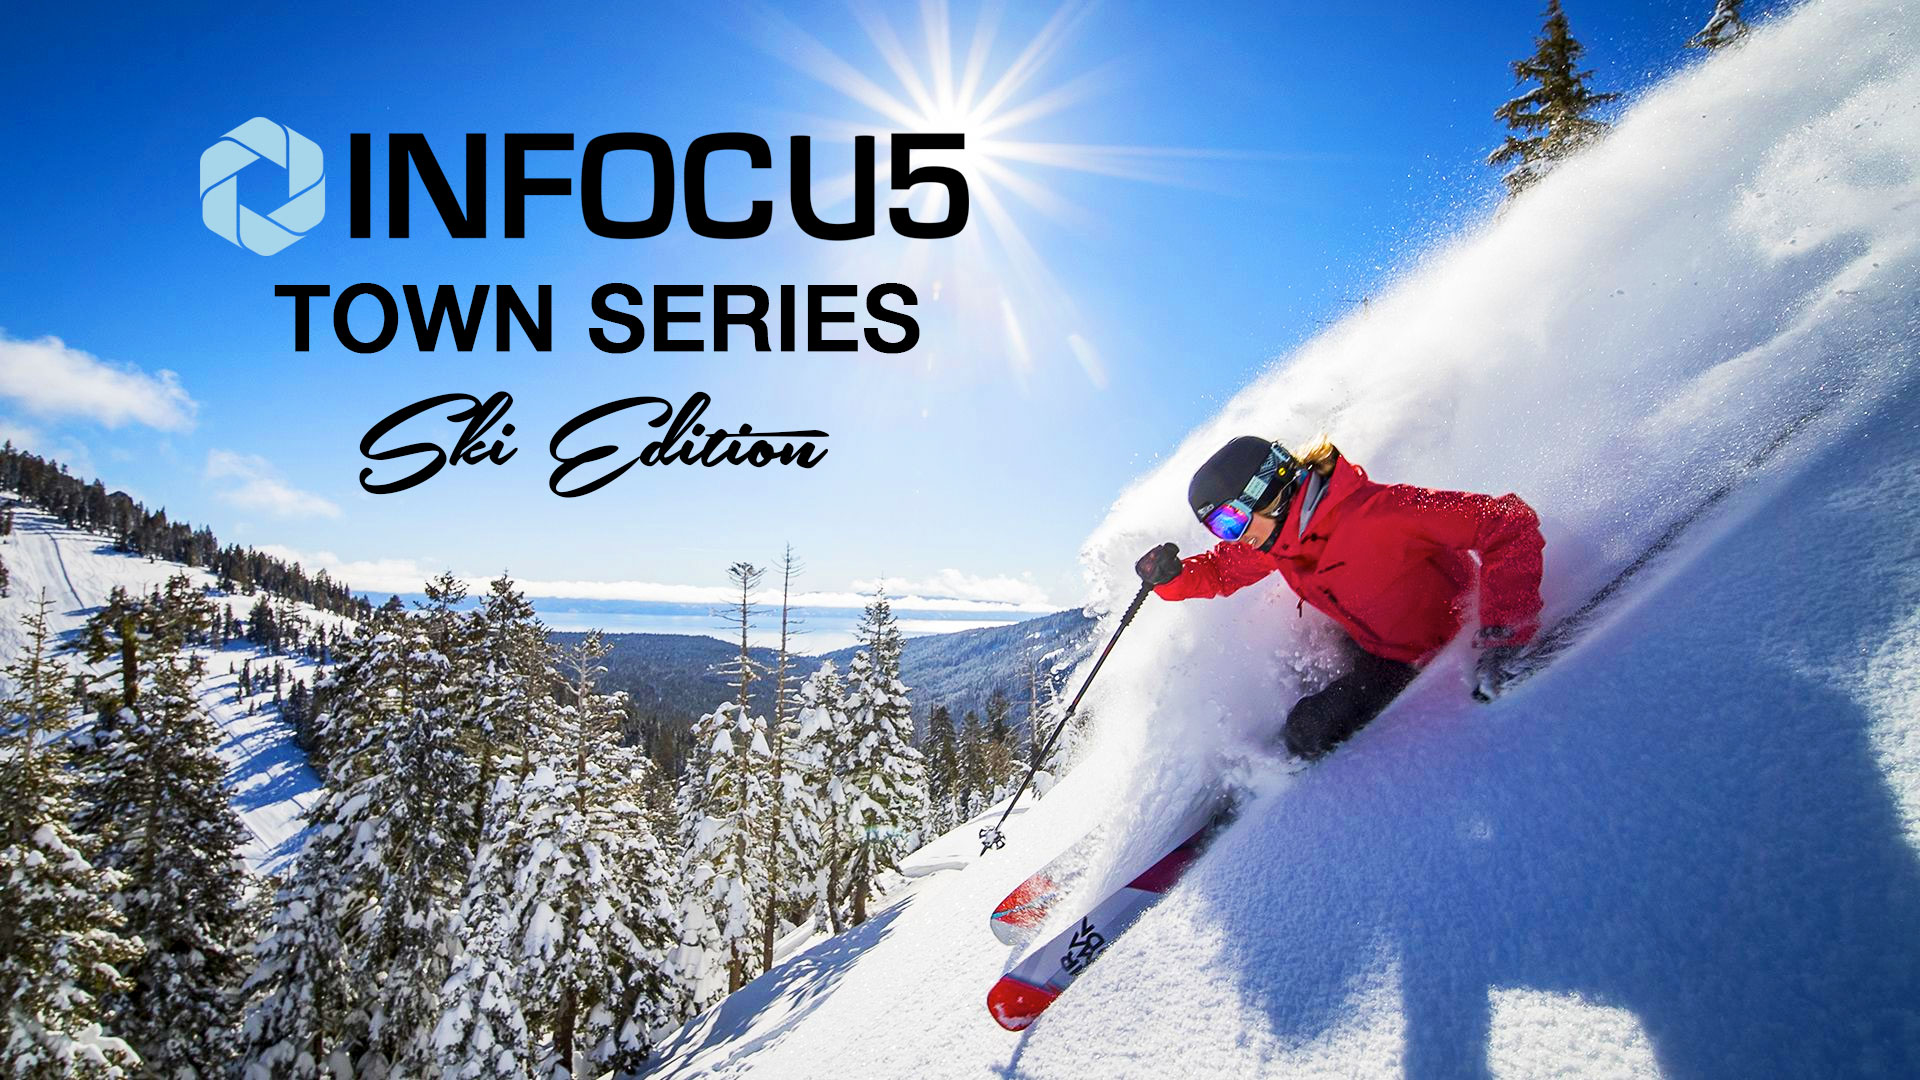 INFOCU5 Town Series – Ski Edition